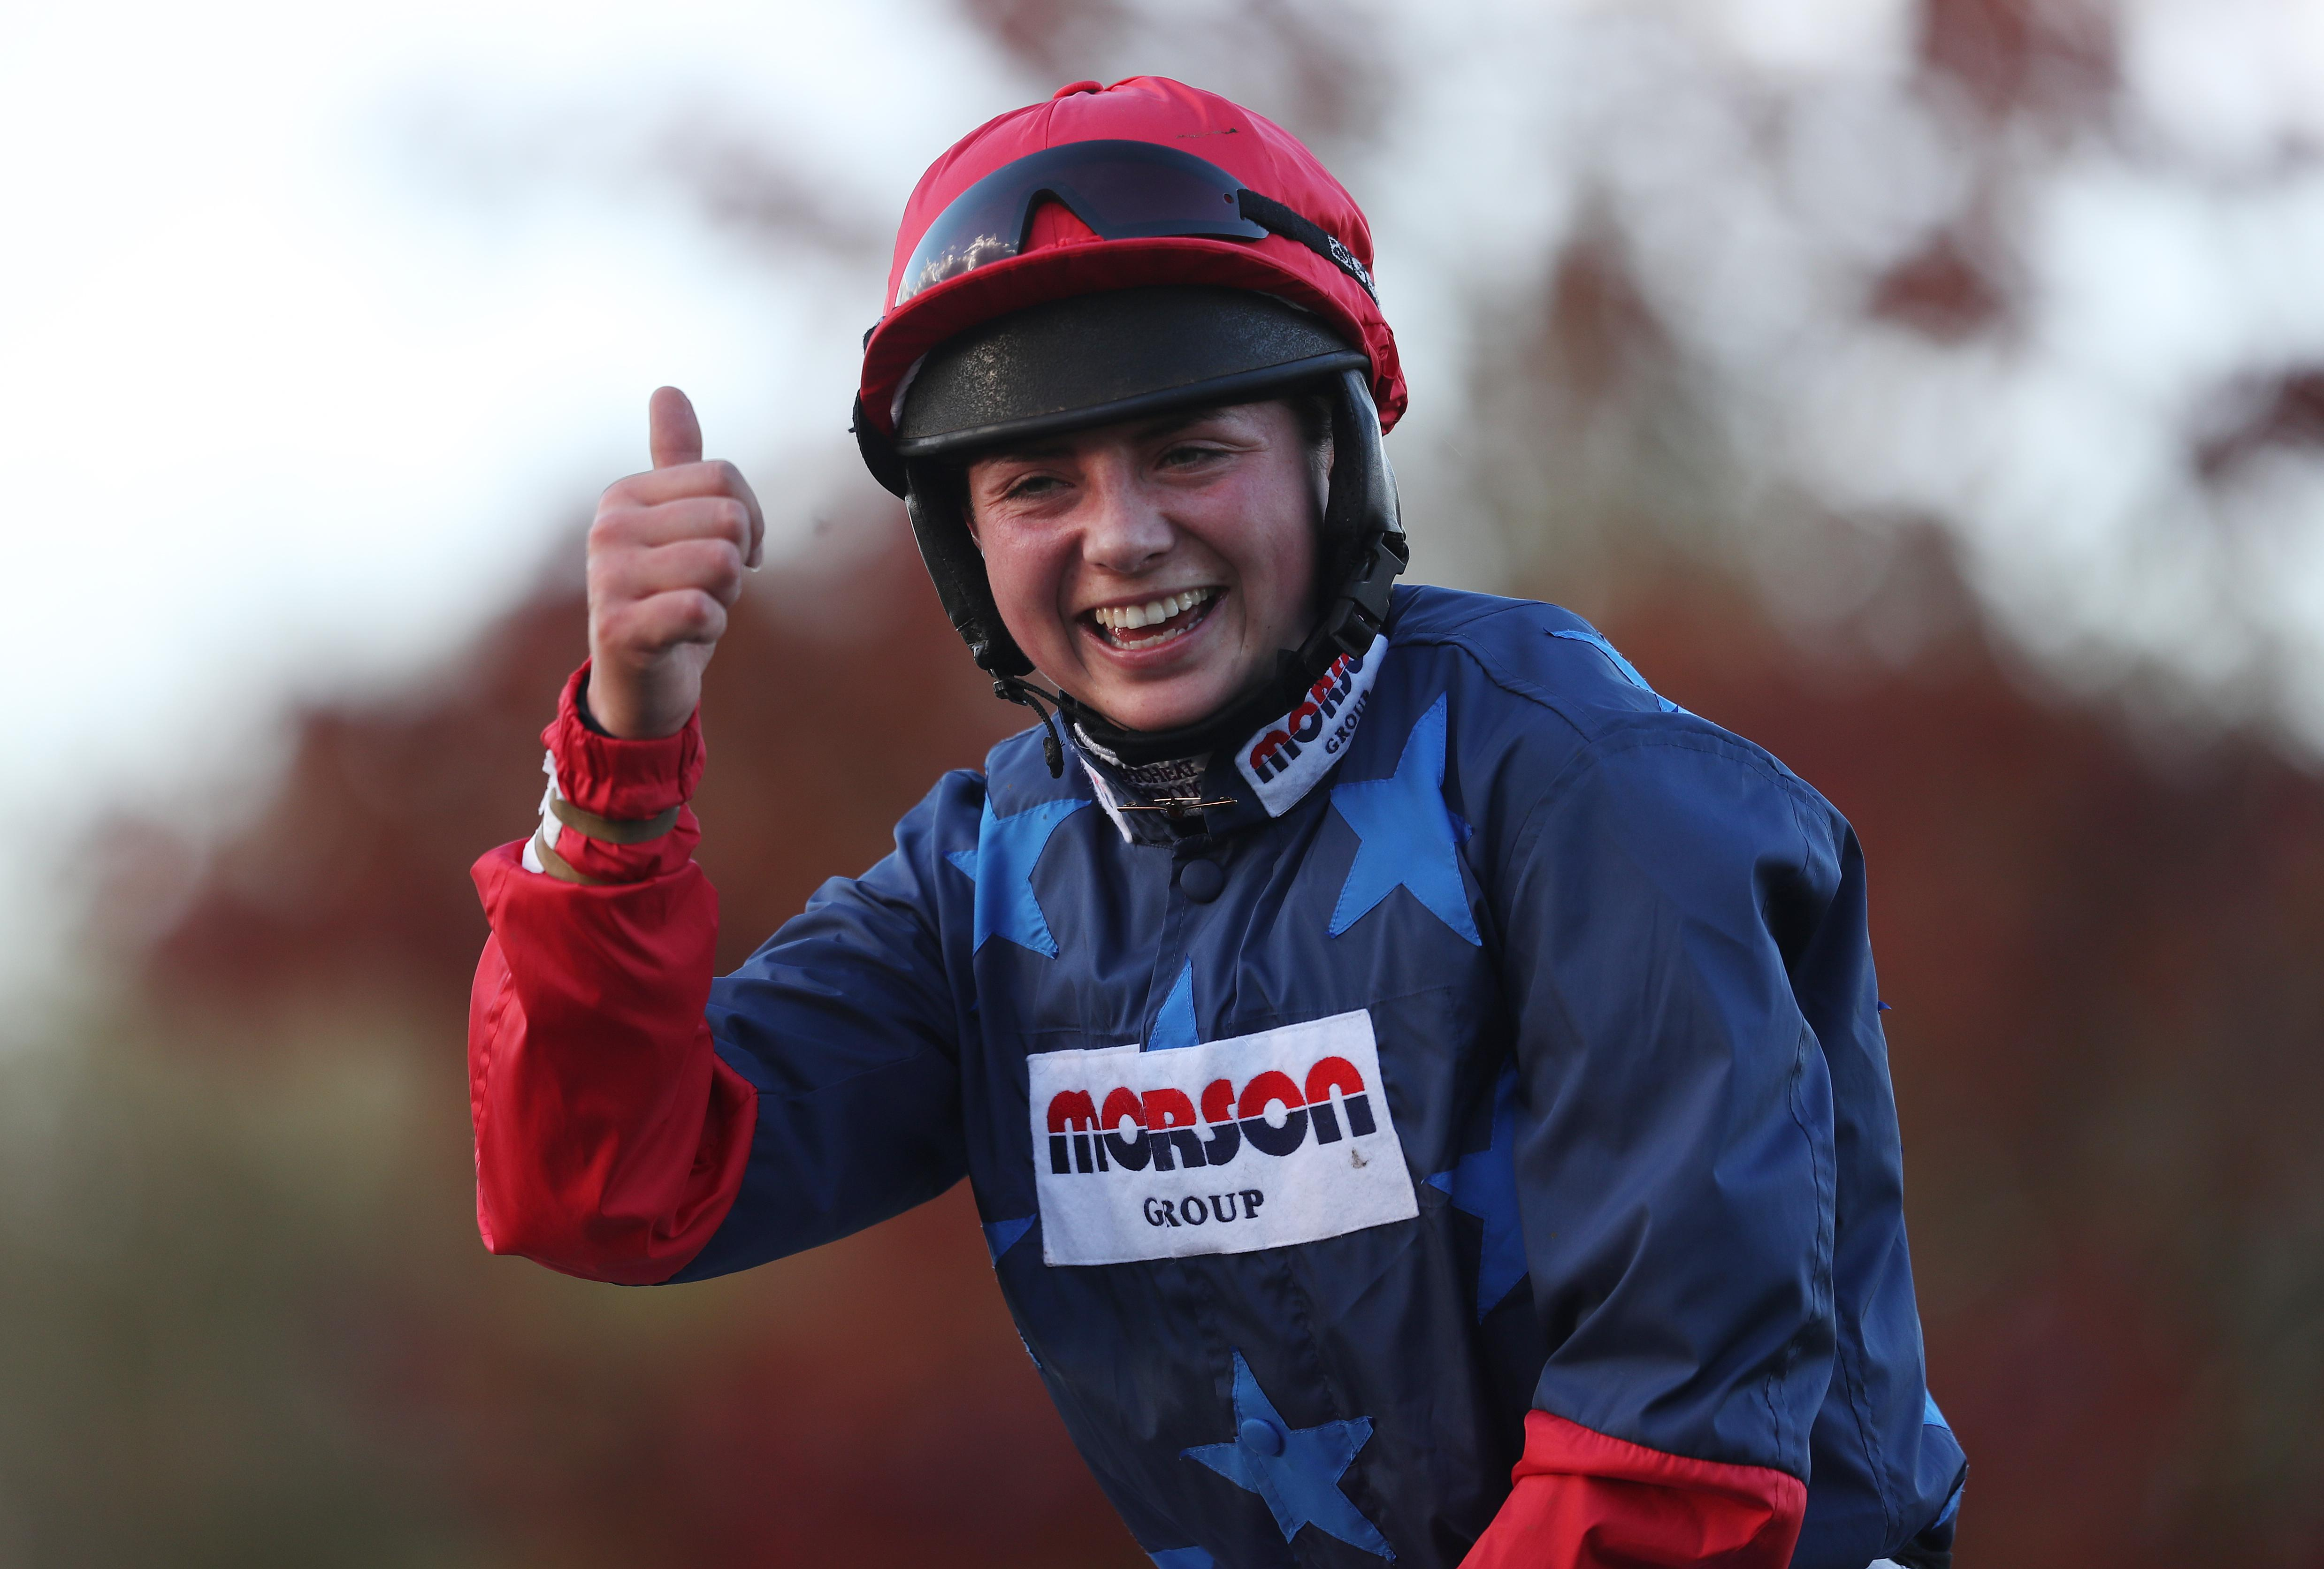 Bryony Frost has had considerable success this season